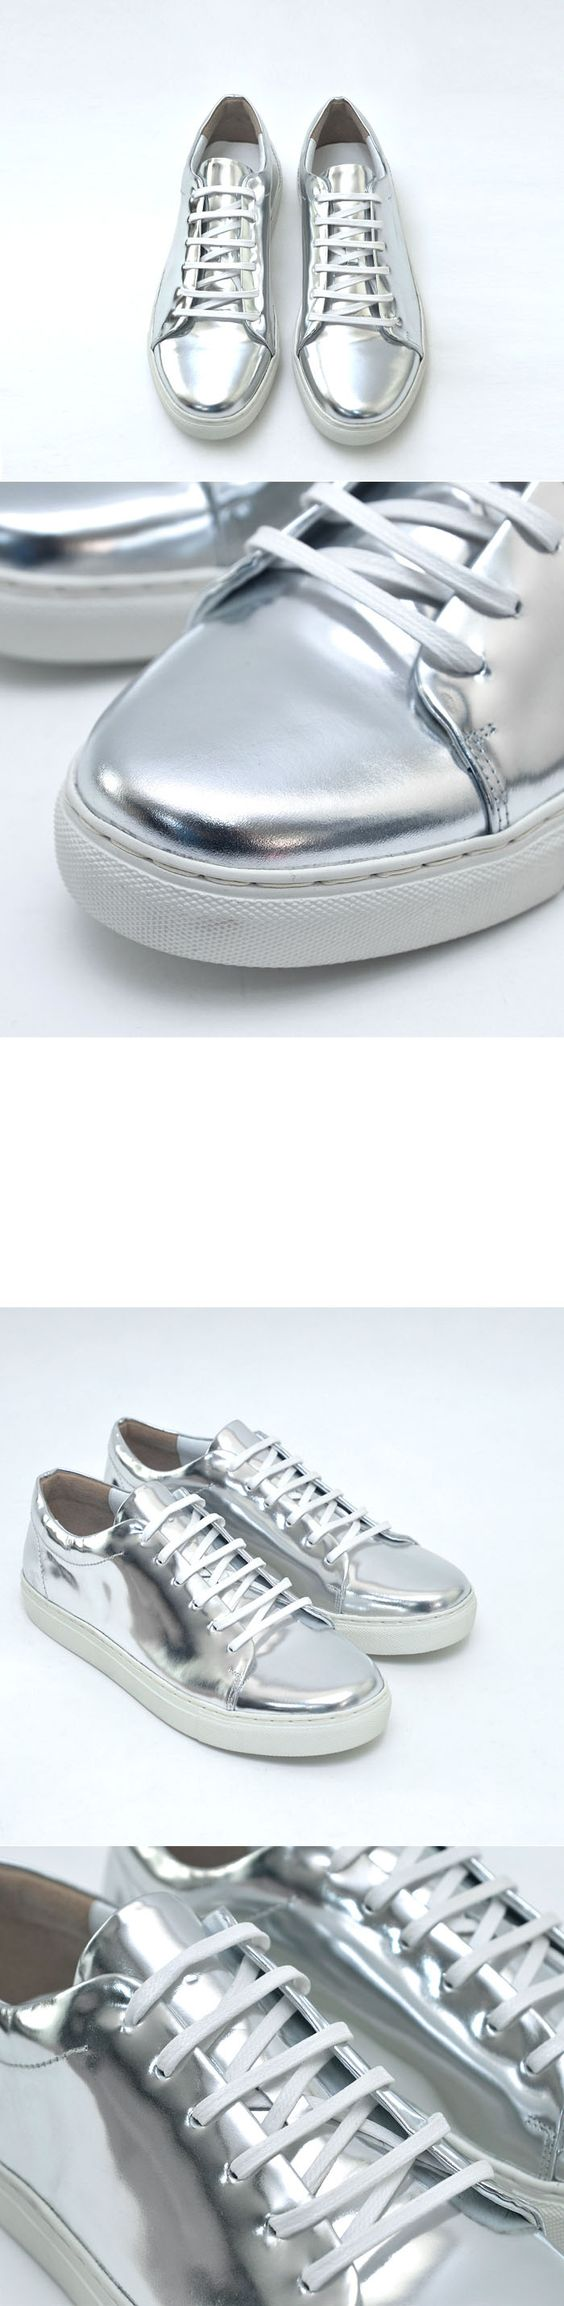 Shoes :: Sneakers :: Metal Silver & Black Leather Sneakers-Shoes 427 - Mens Fashion Clothing For An Attractive Guy Look